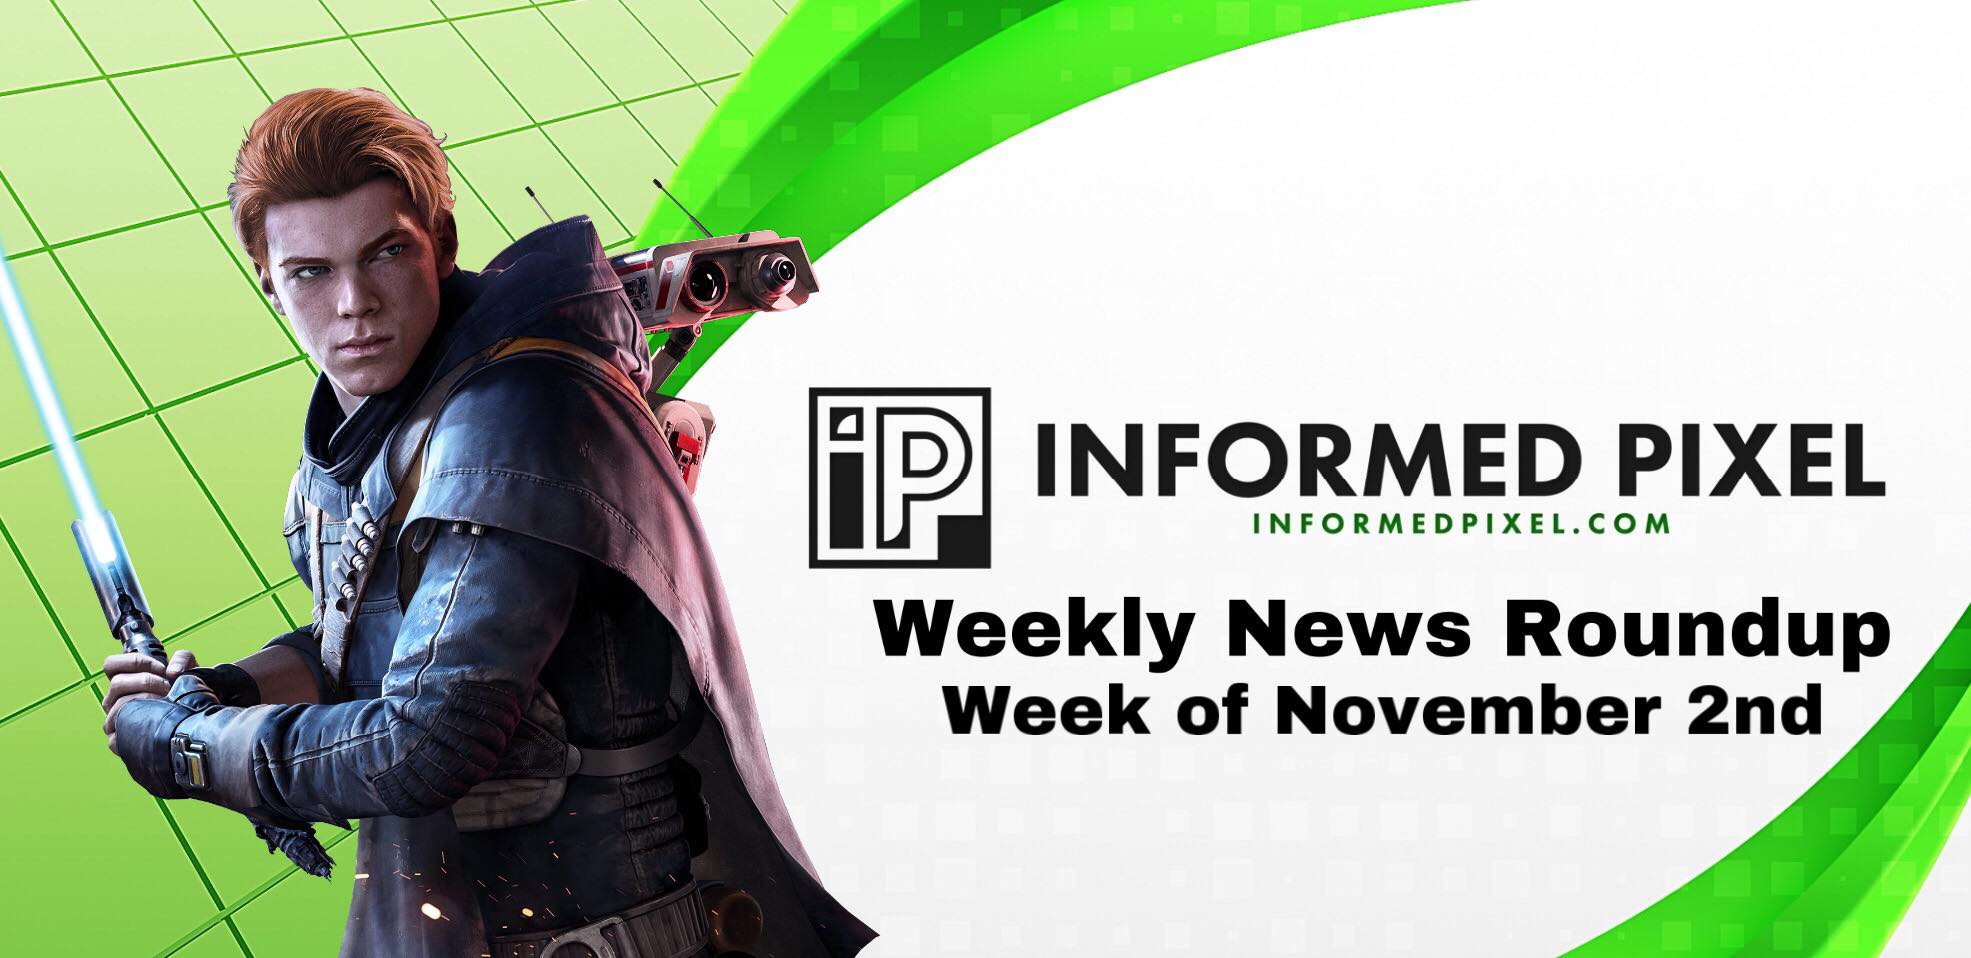 Weekly News Roundup – Week of November 2nd